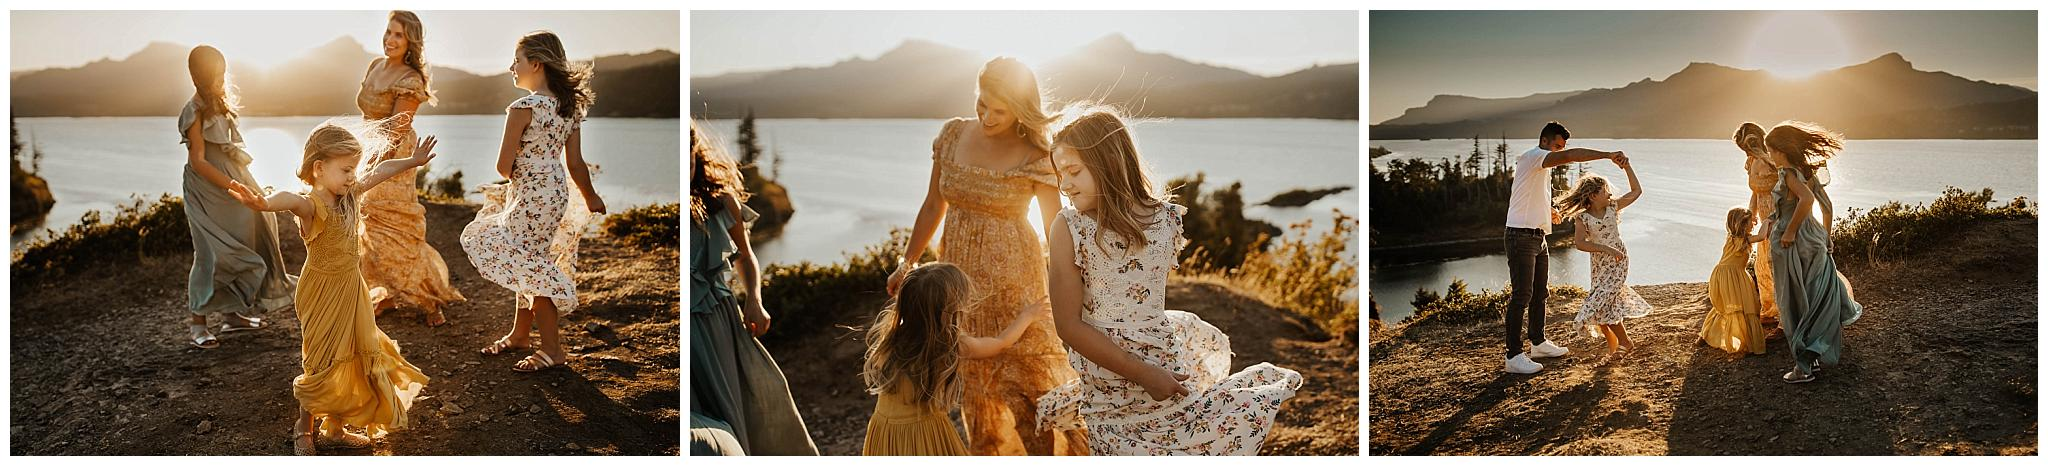 Family dancing together in maxi dresses near Portland